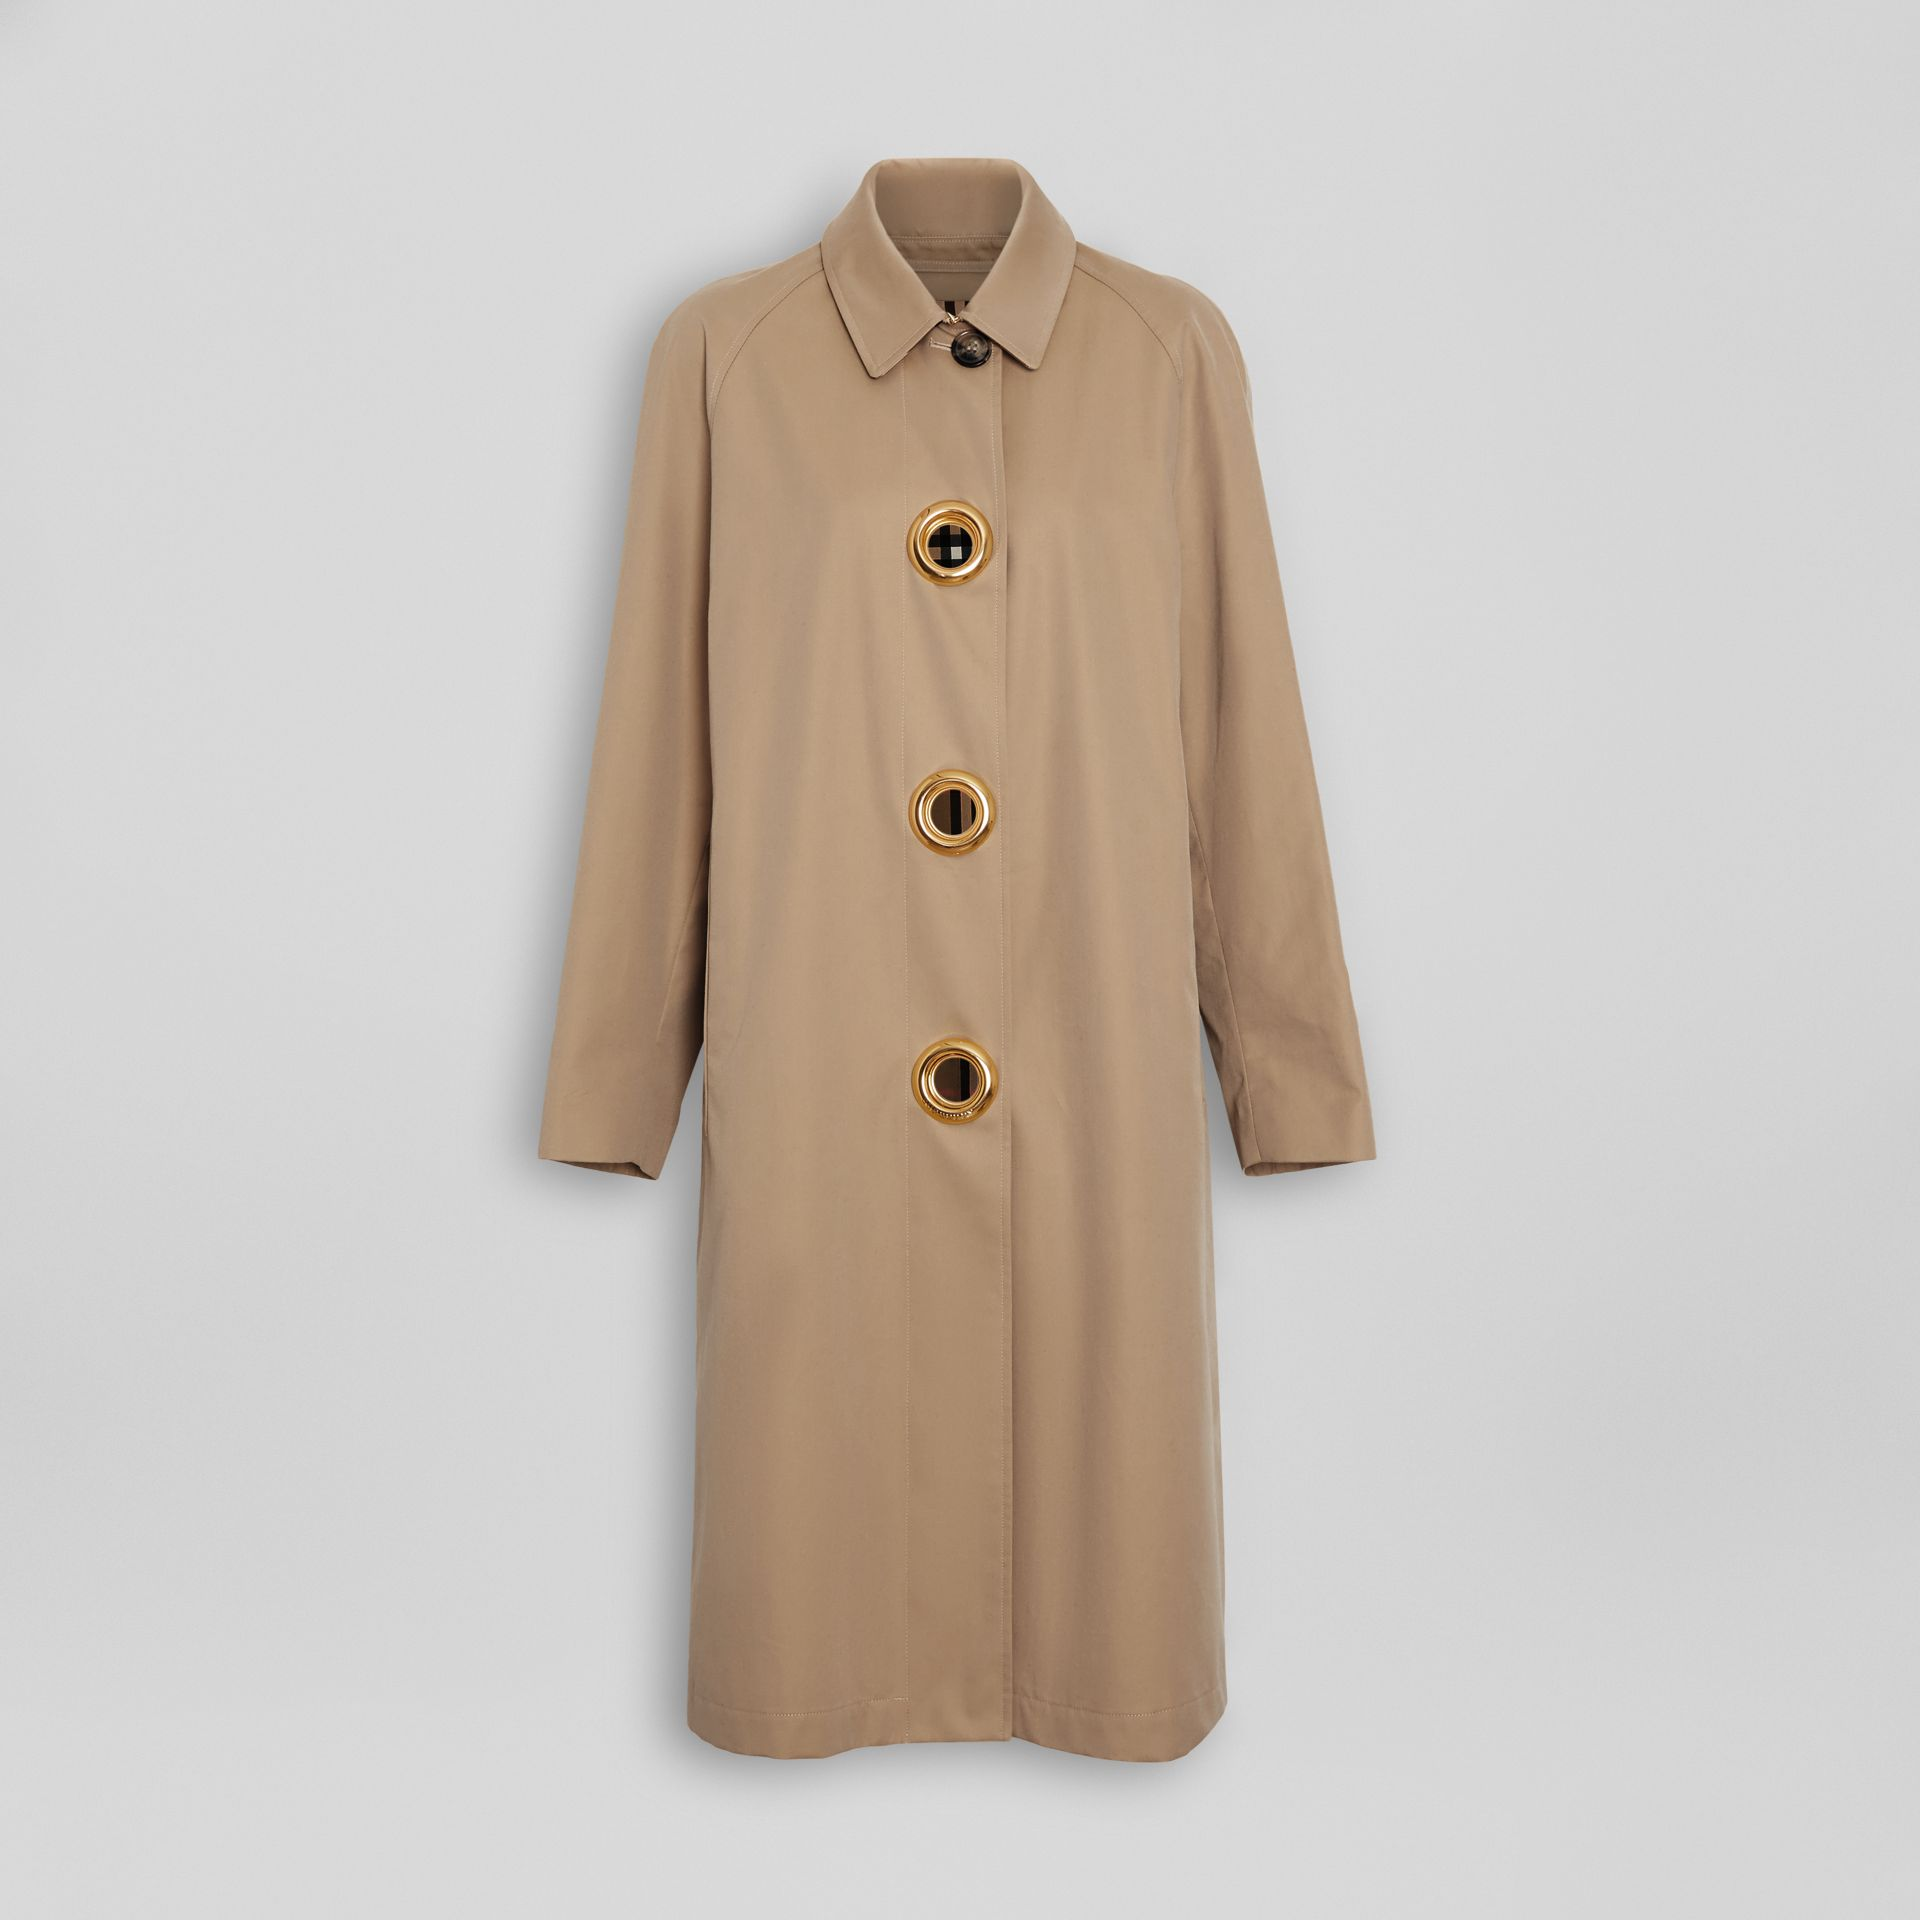 Grommet Detail Cotton Gabardine Car Coat in Honey - Women | Burberry - gallery image 3